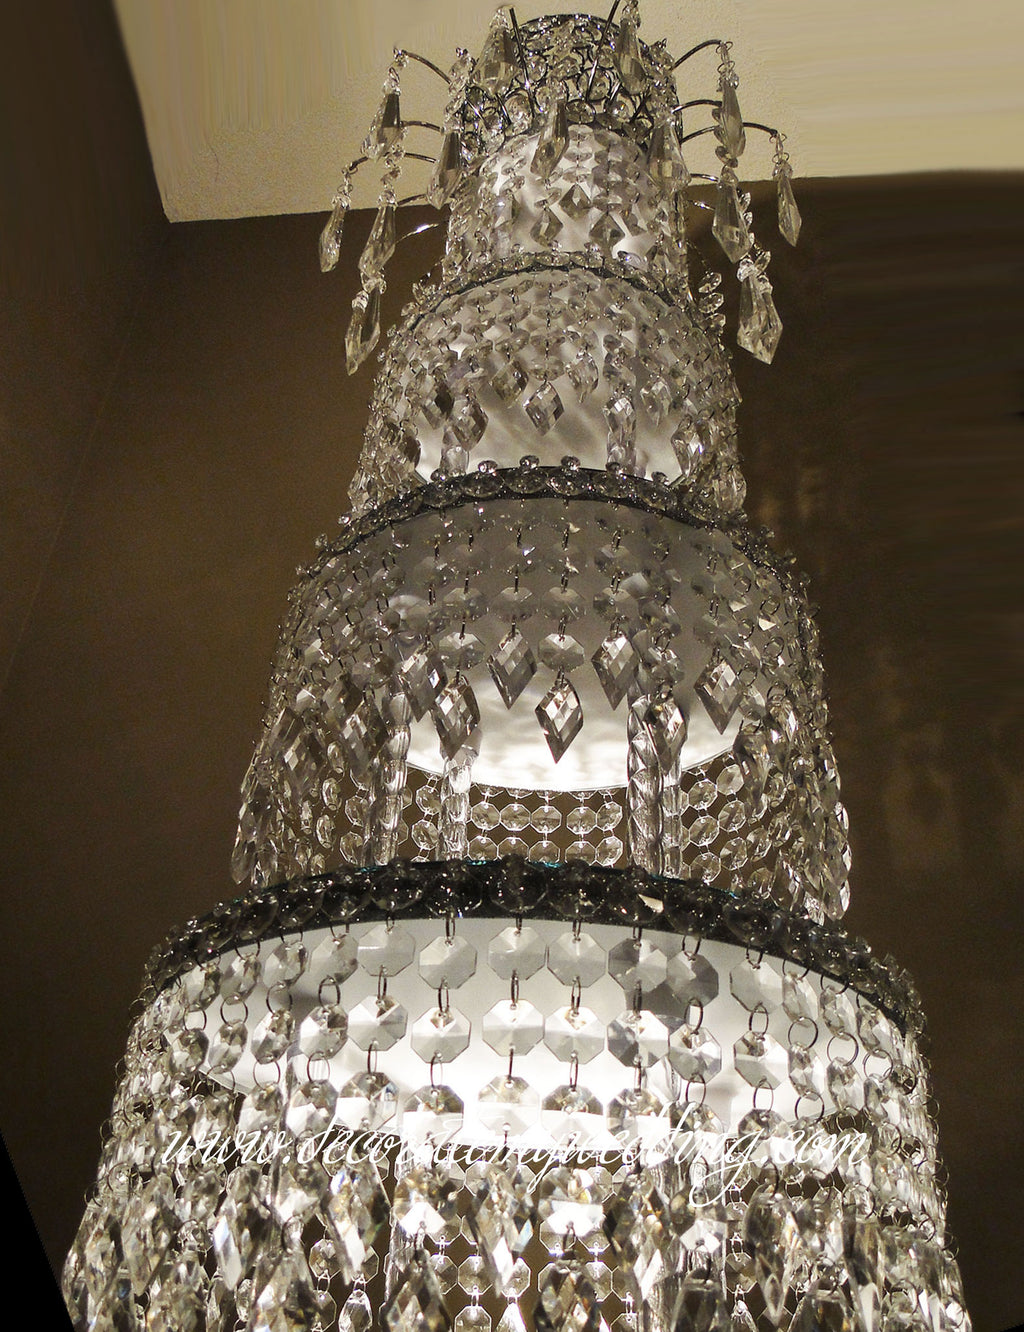 A vertical look at the stacks of diamonds that create a non-traditional wedding centerpiece.